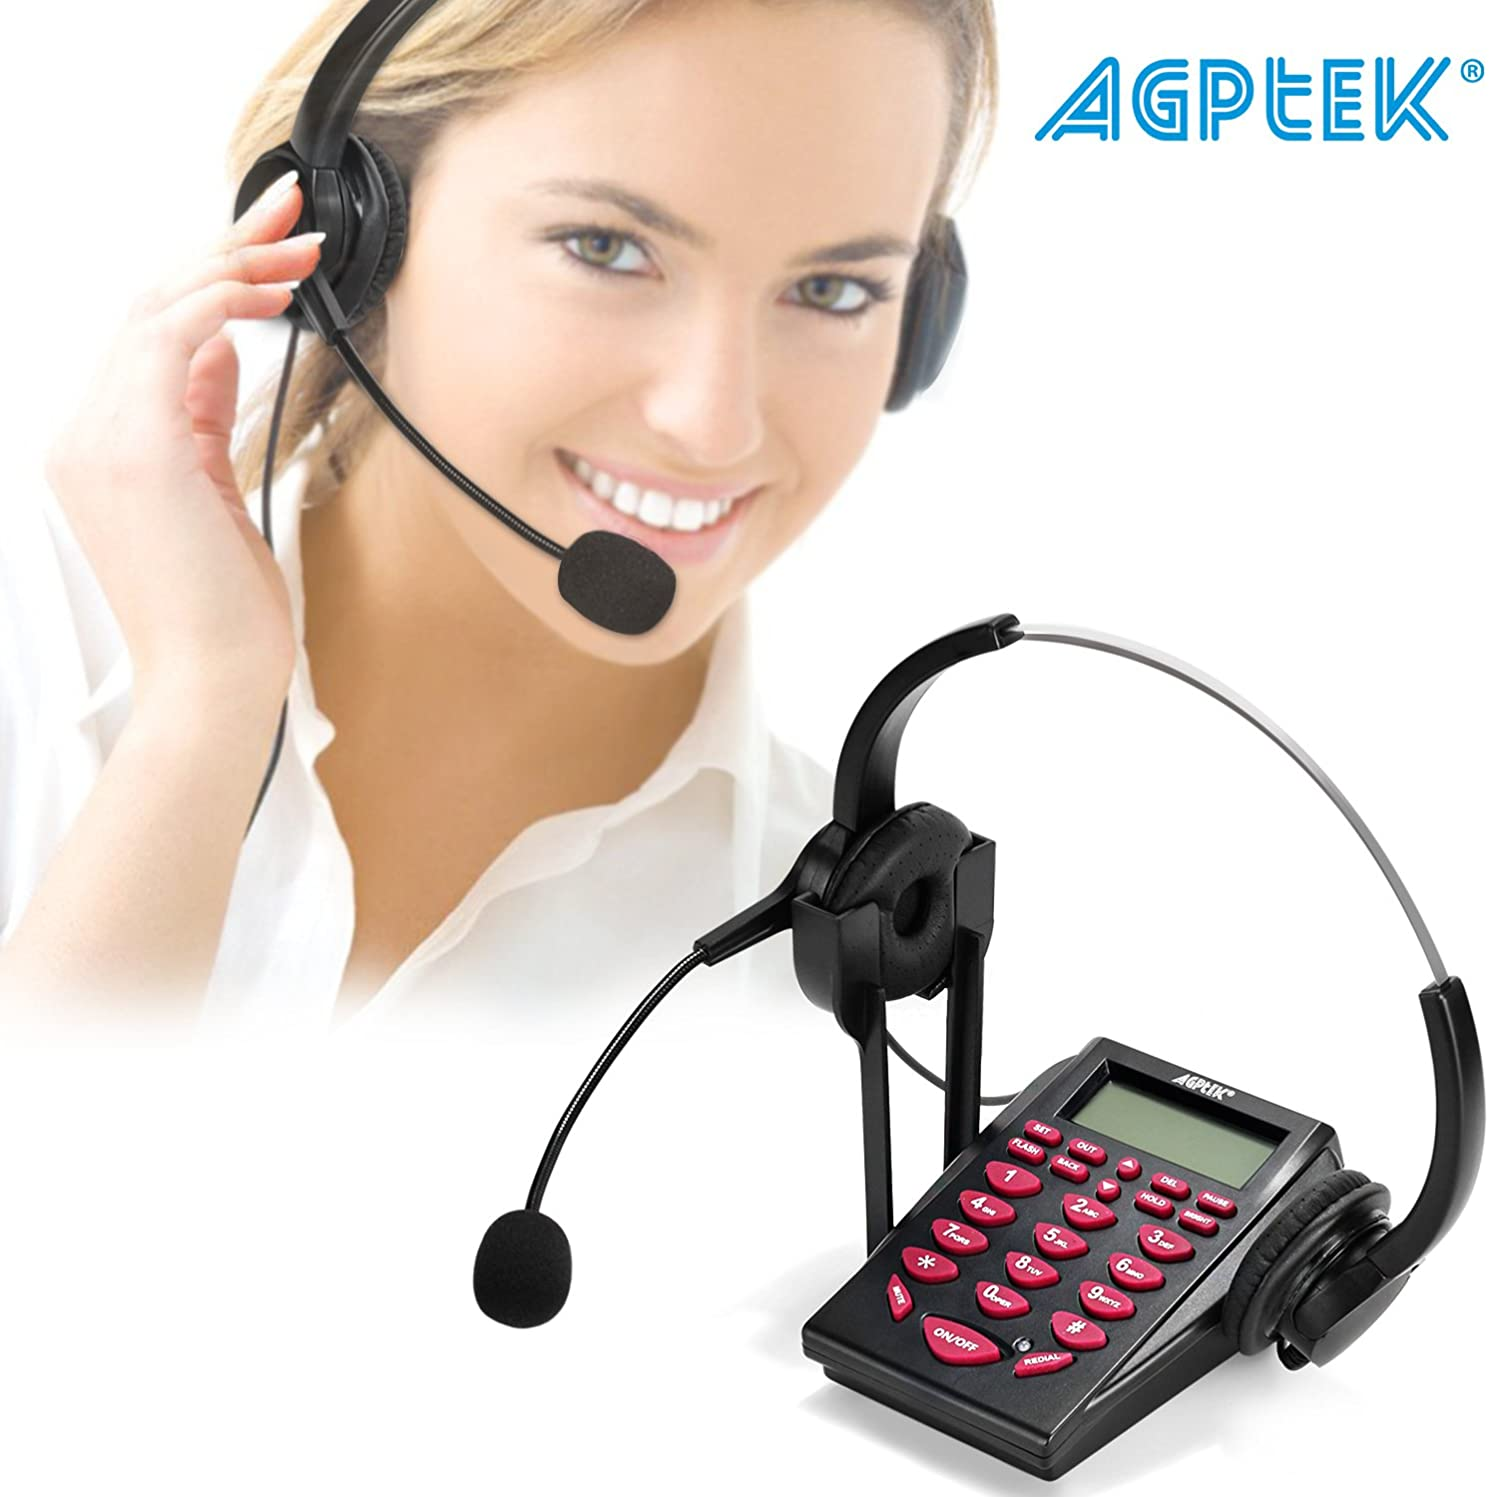 AGPtek Hands-free Call Center Noise Cancellation Corded Binaural Headset Telephone, with Backlight Tone Dial Key Pad & REDIAL + Desk Phone Headphones PC Recording Function for Telephone Counseling Services, Insurance, Hospitals,Banks,Telecom Operators,